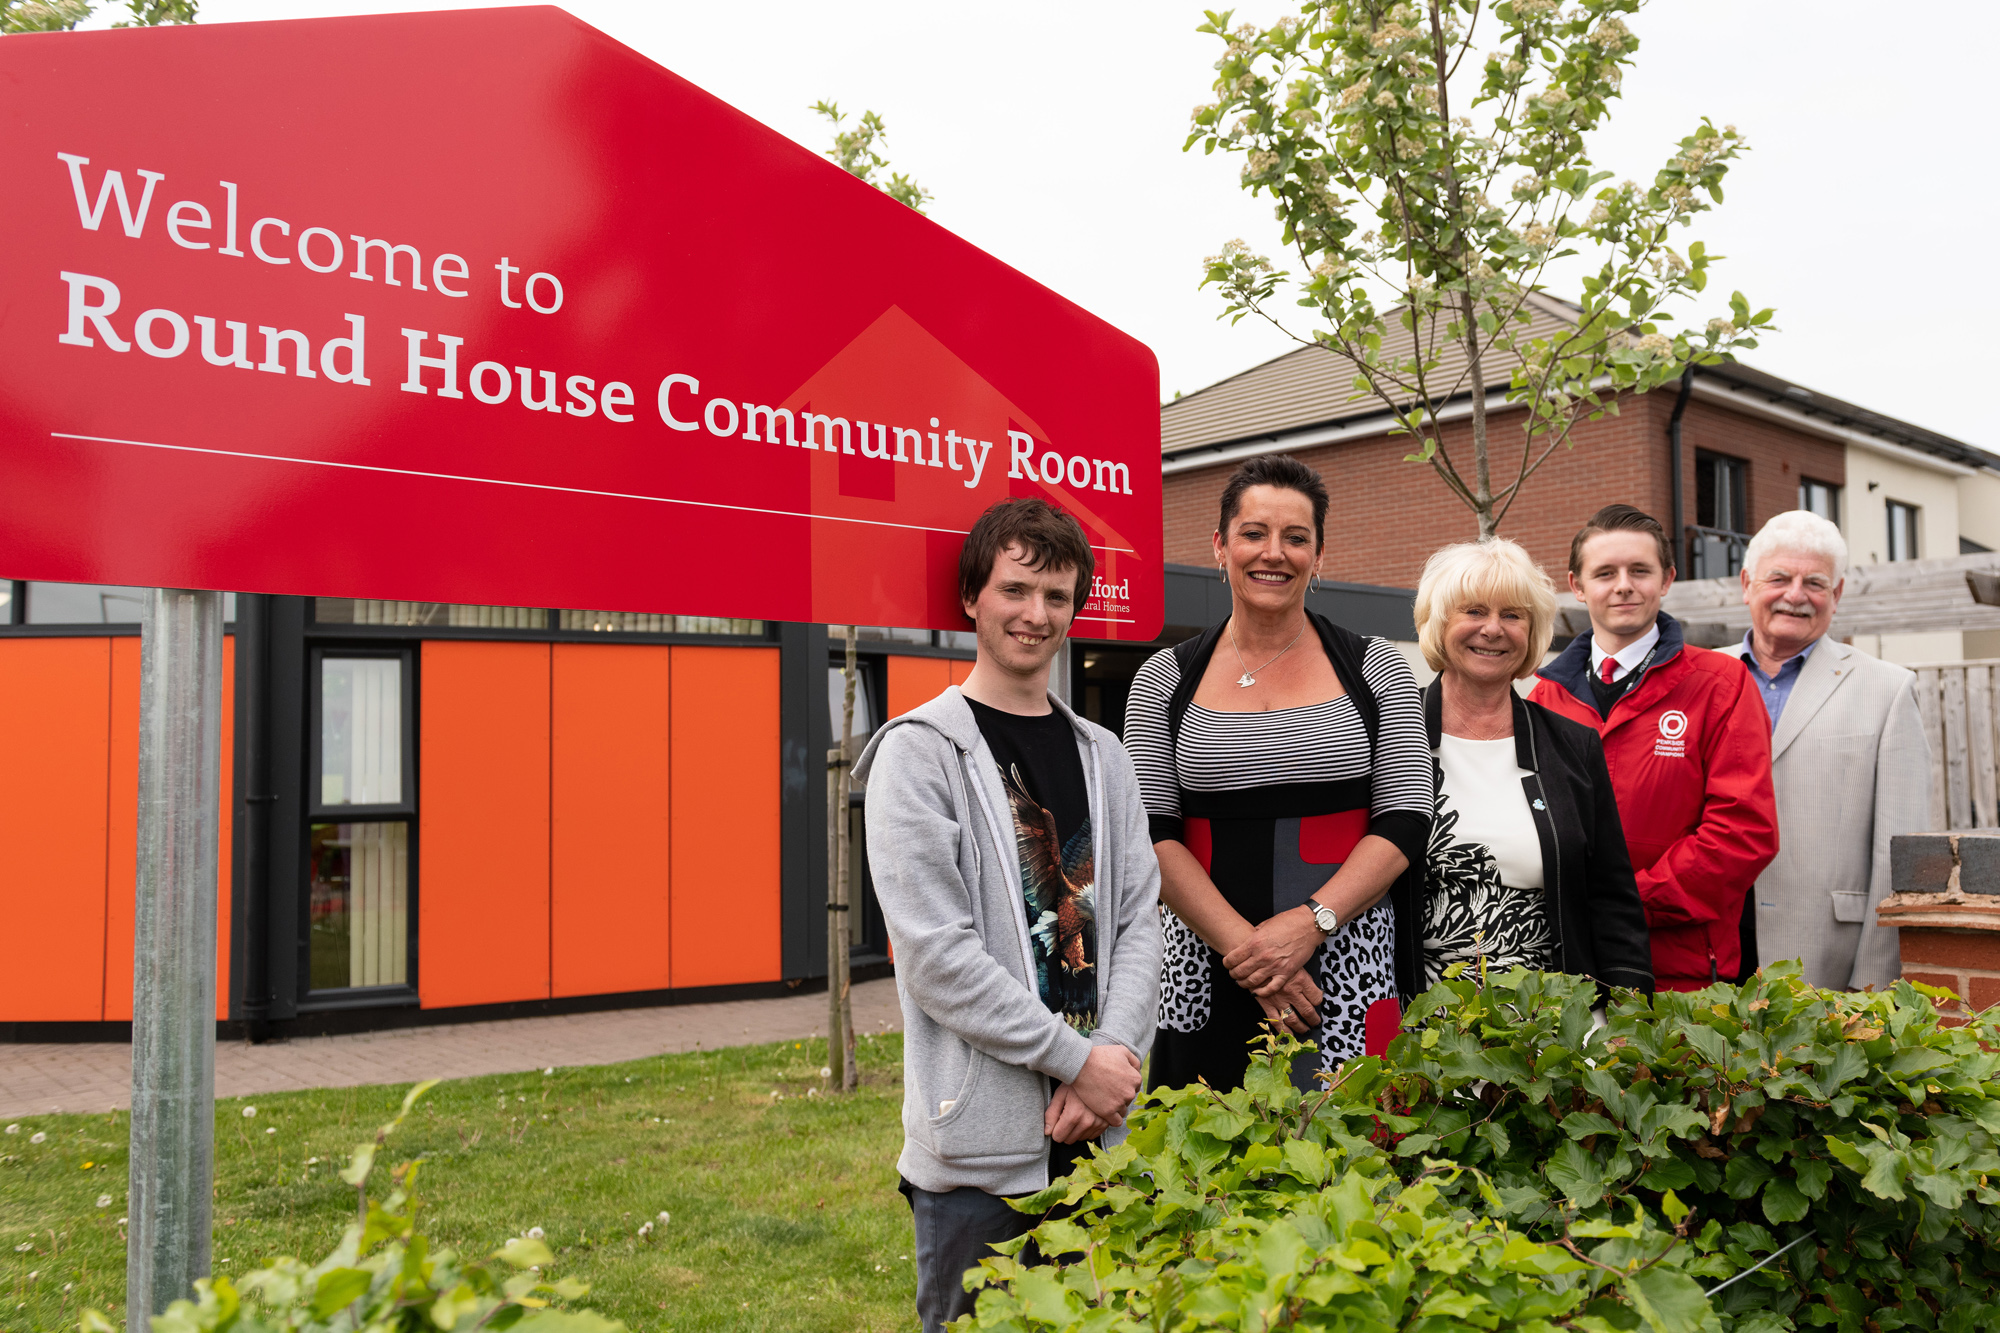 Community Room given boost by SARH regeneration project